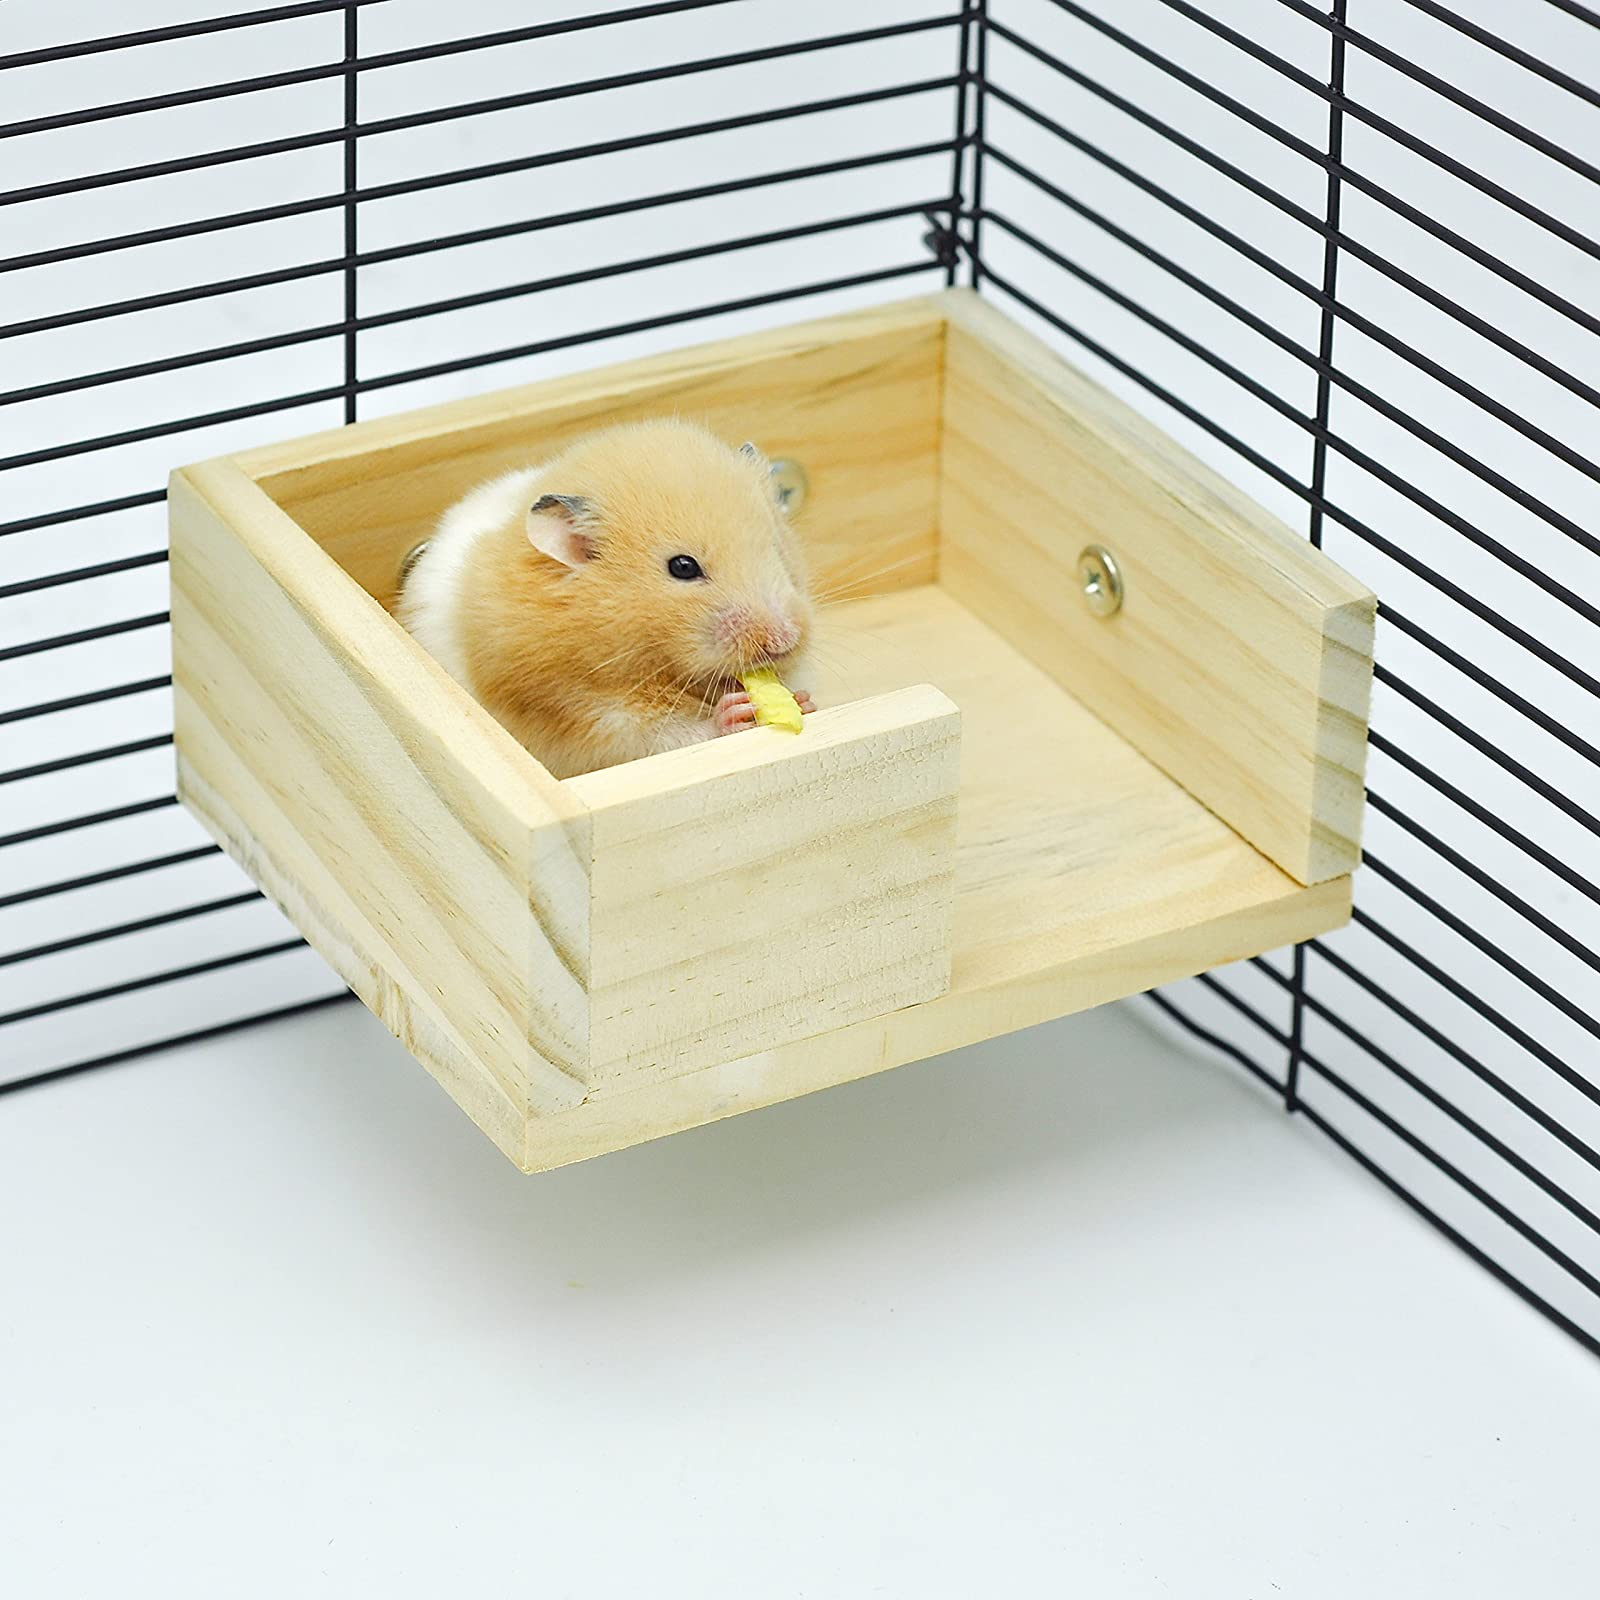 Niteangel Wooden Hamster Mouse Small Animals Lookout - 5